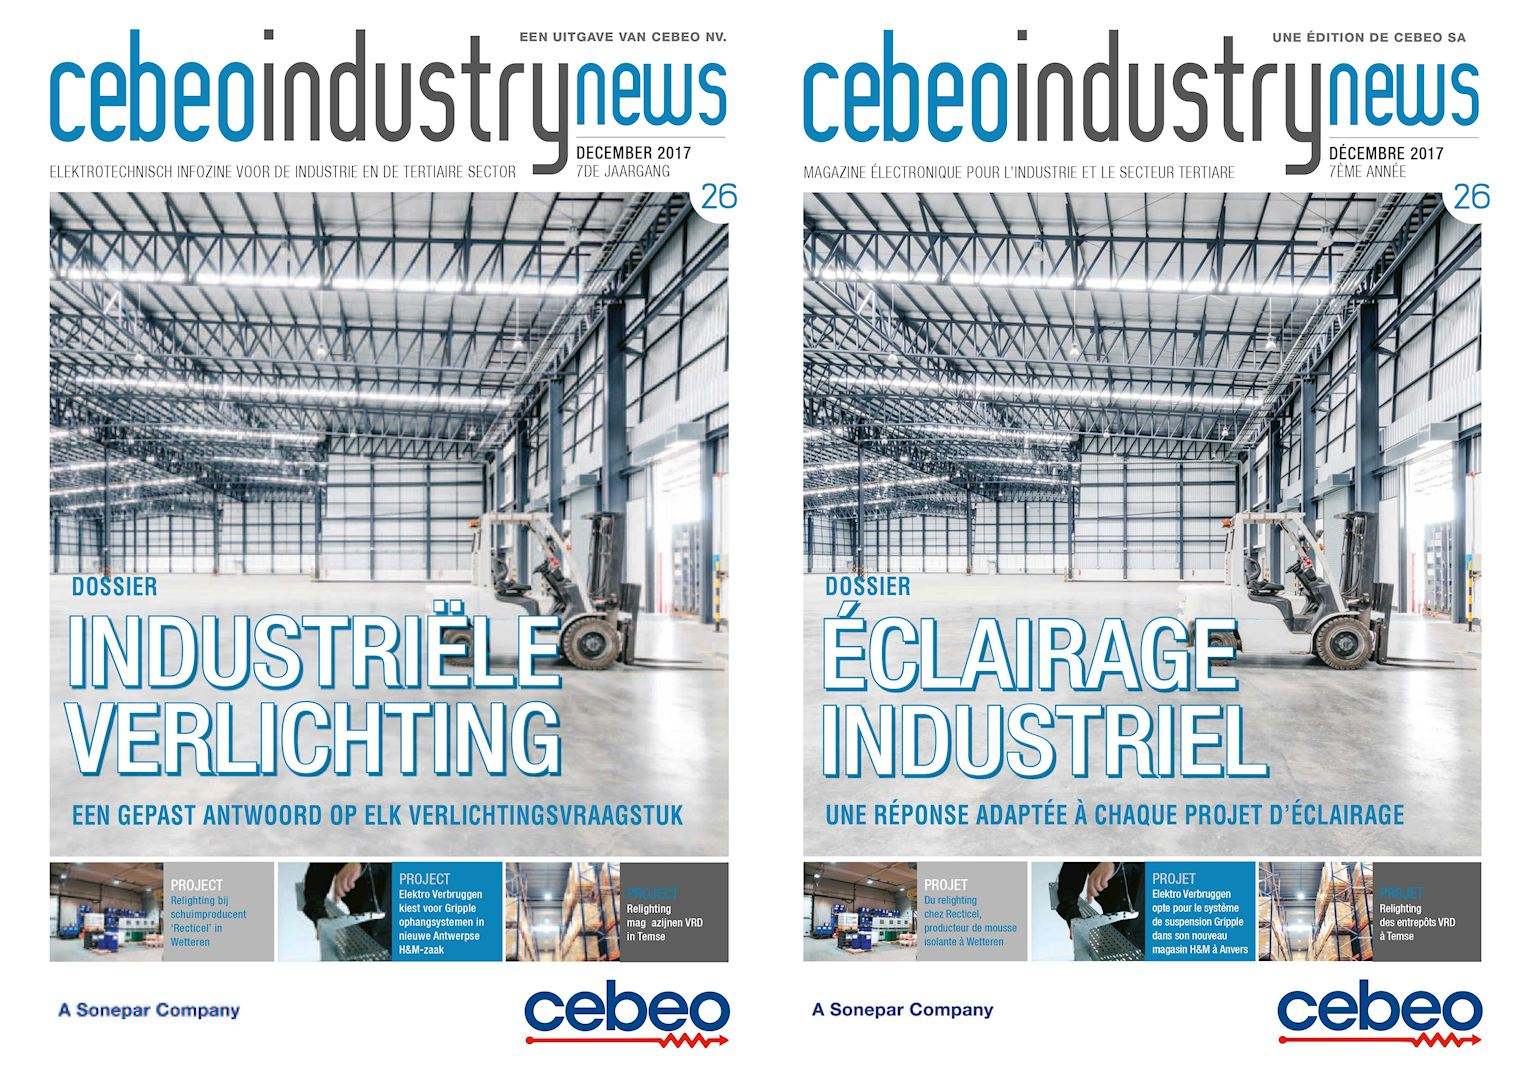 Cebeo Industry News 26 Éclairage Industriel